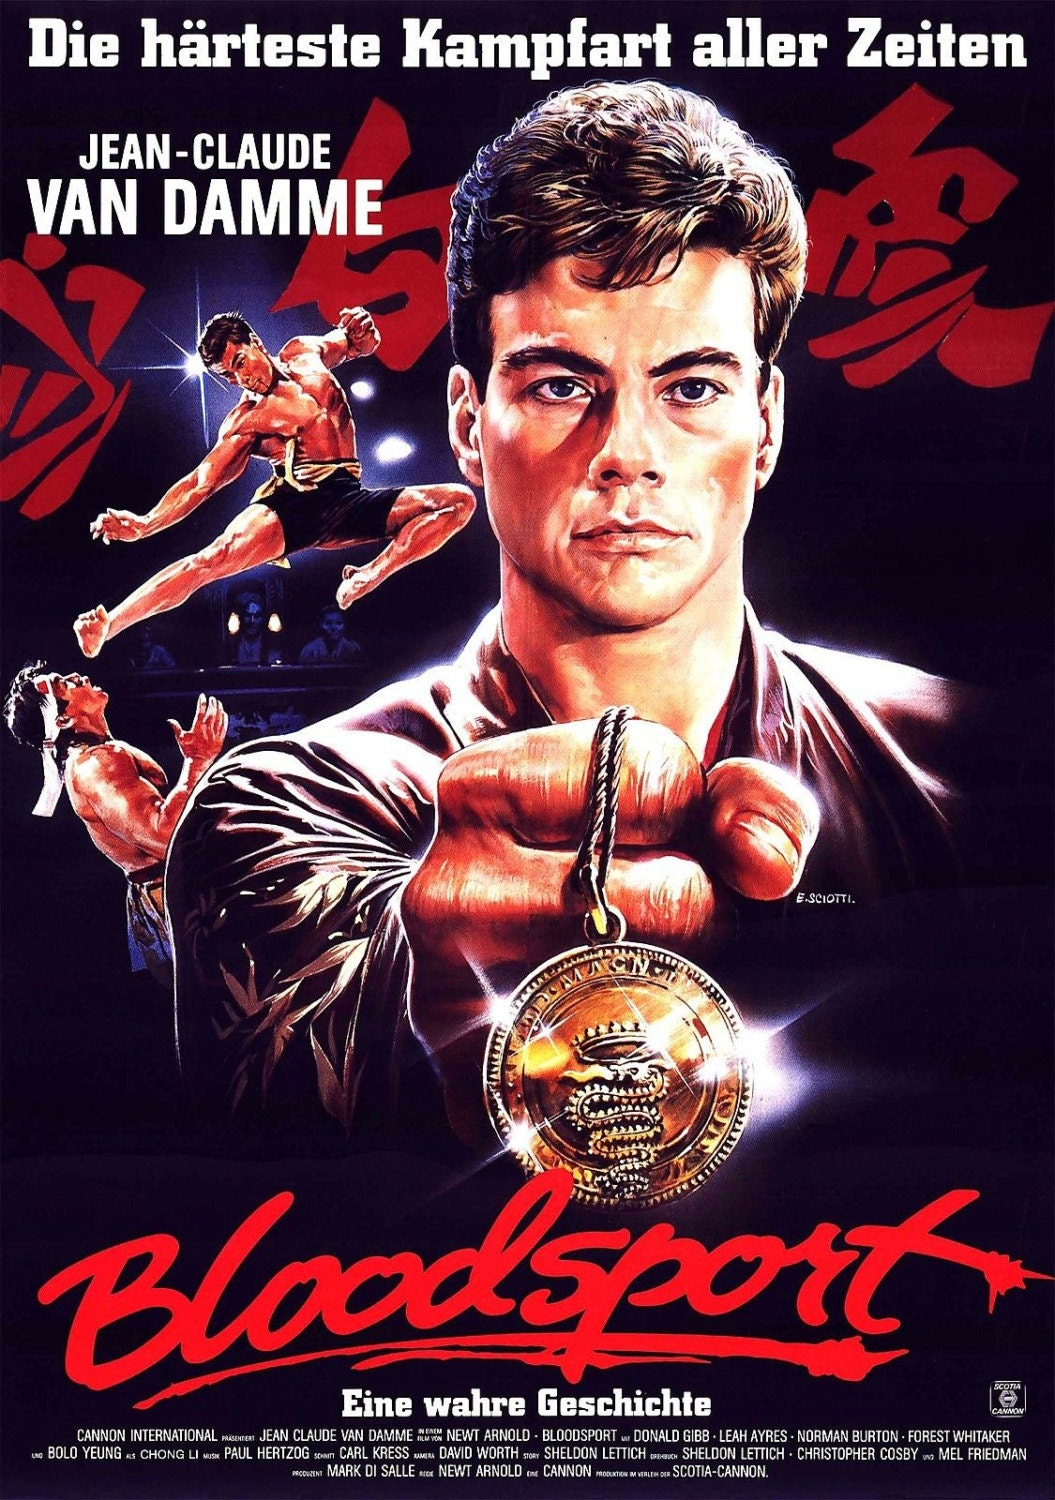 Jean claude van damme full movie